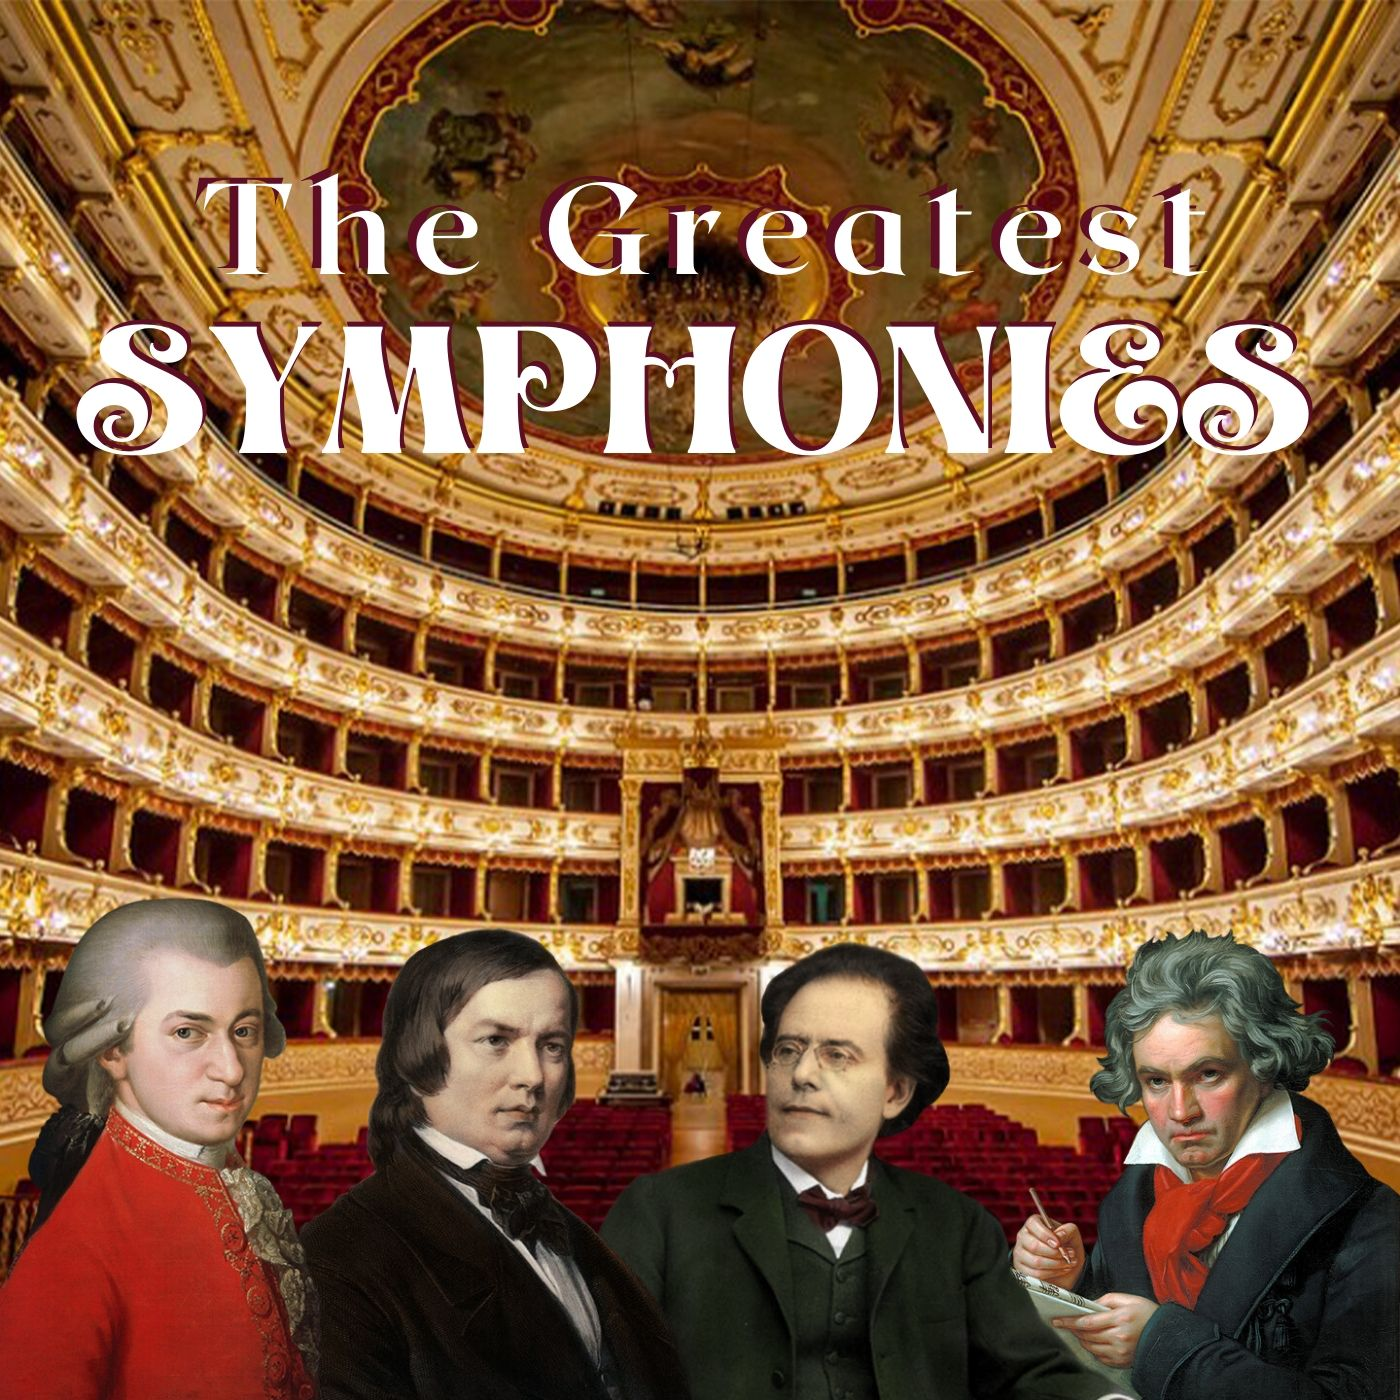 The Greatest Classical Symphonies